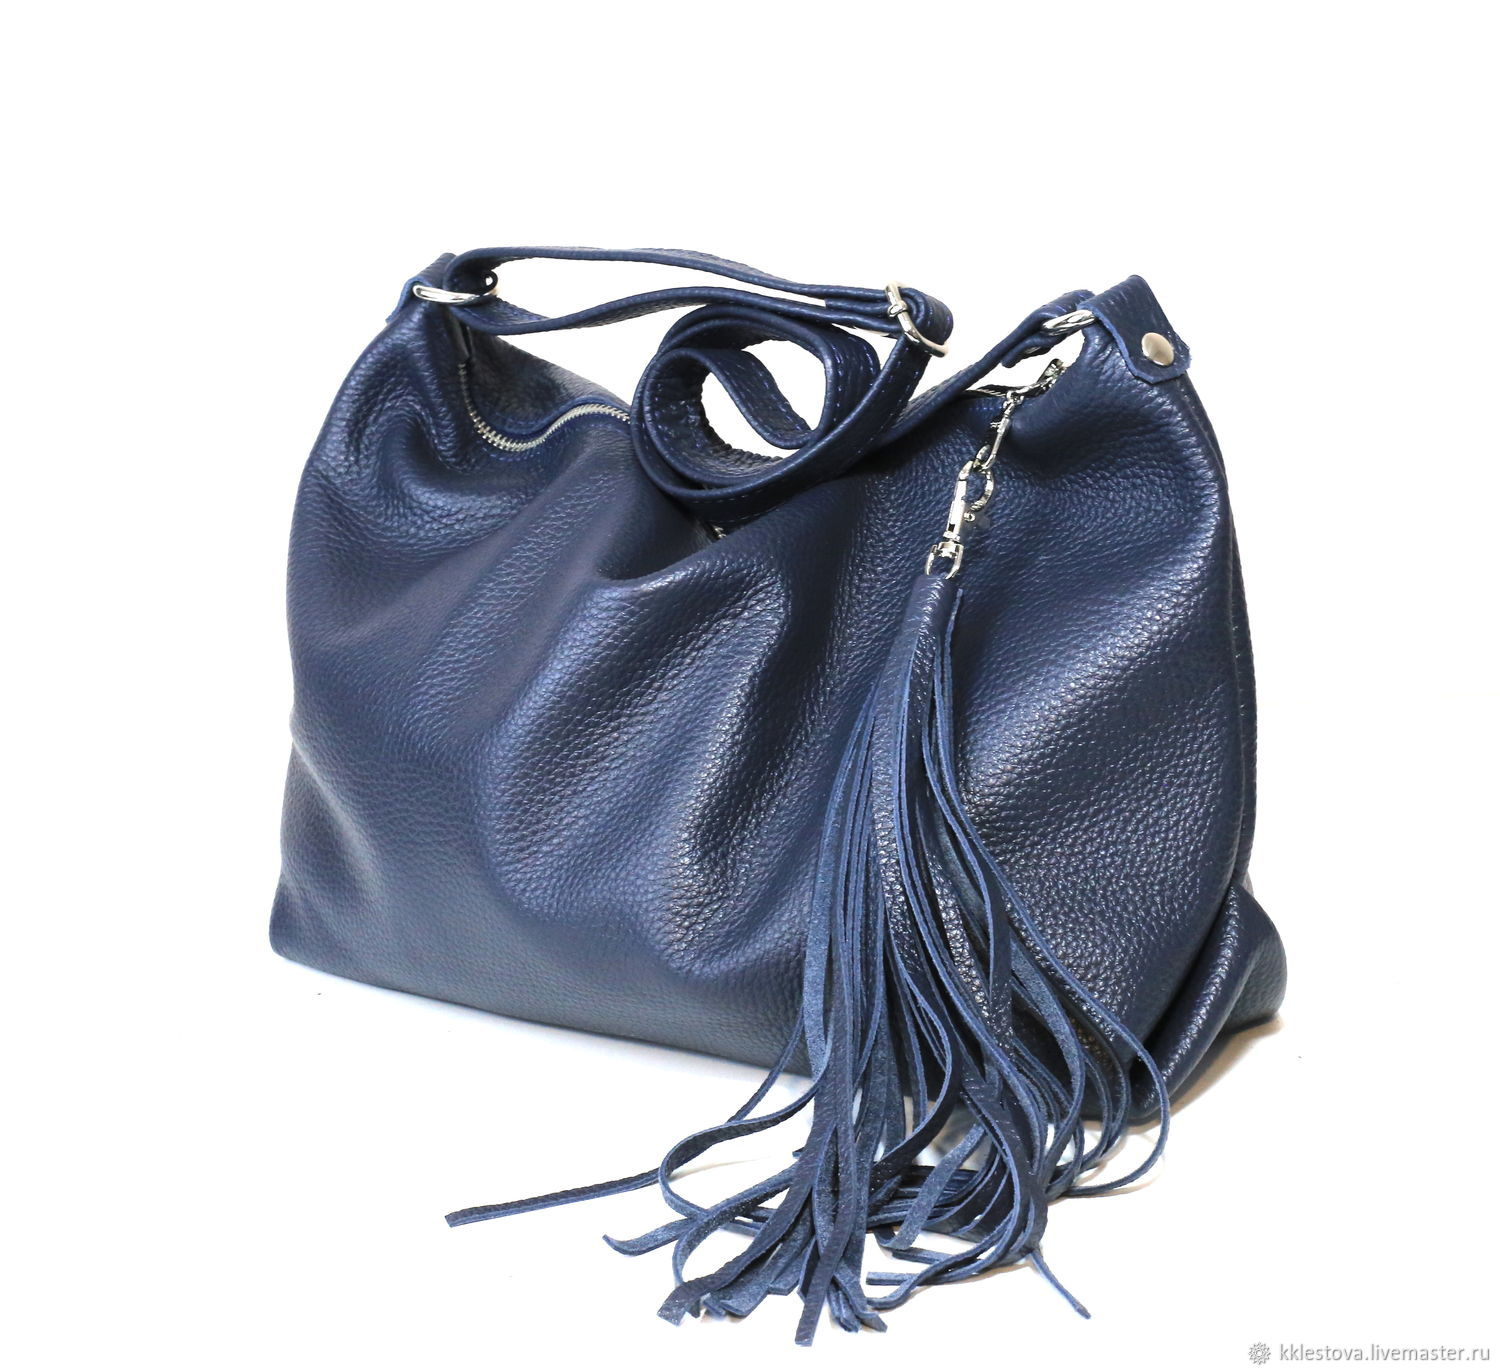 Bag with shoulder strap with internal pocket and tassel, Crossbody bag, Moscow,  Фото №1